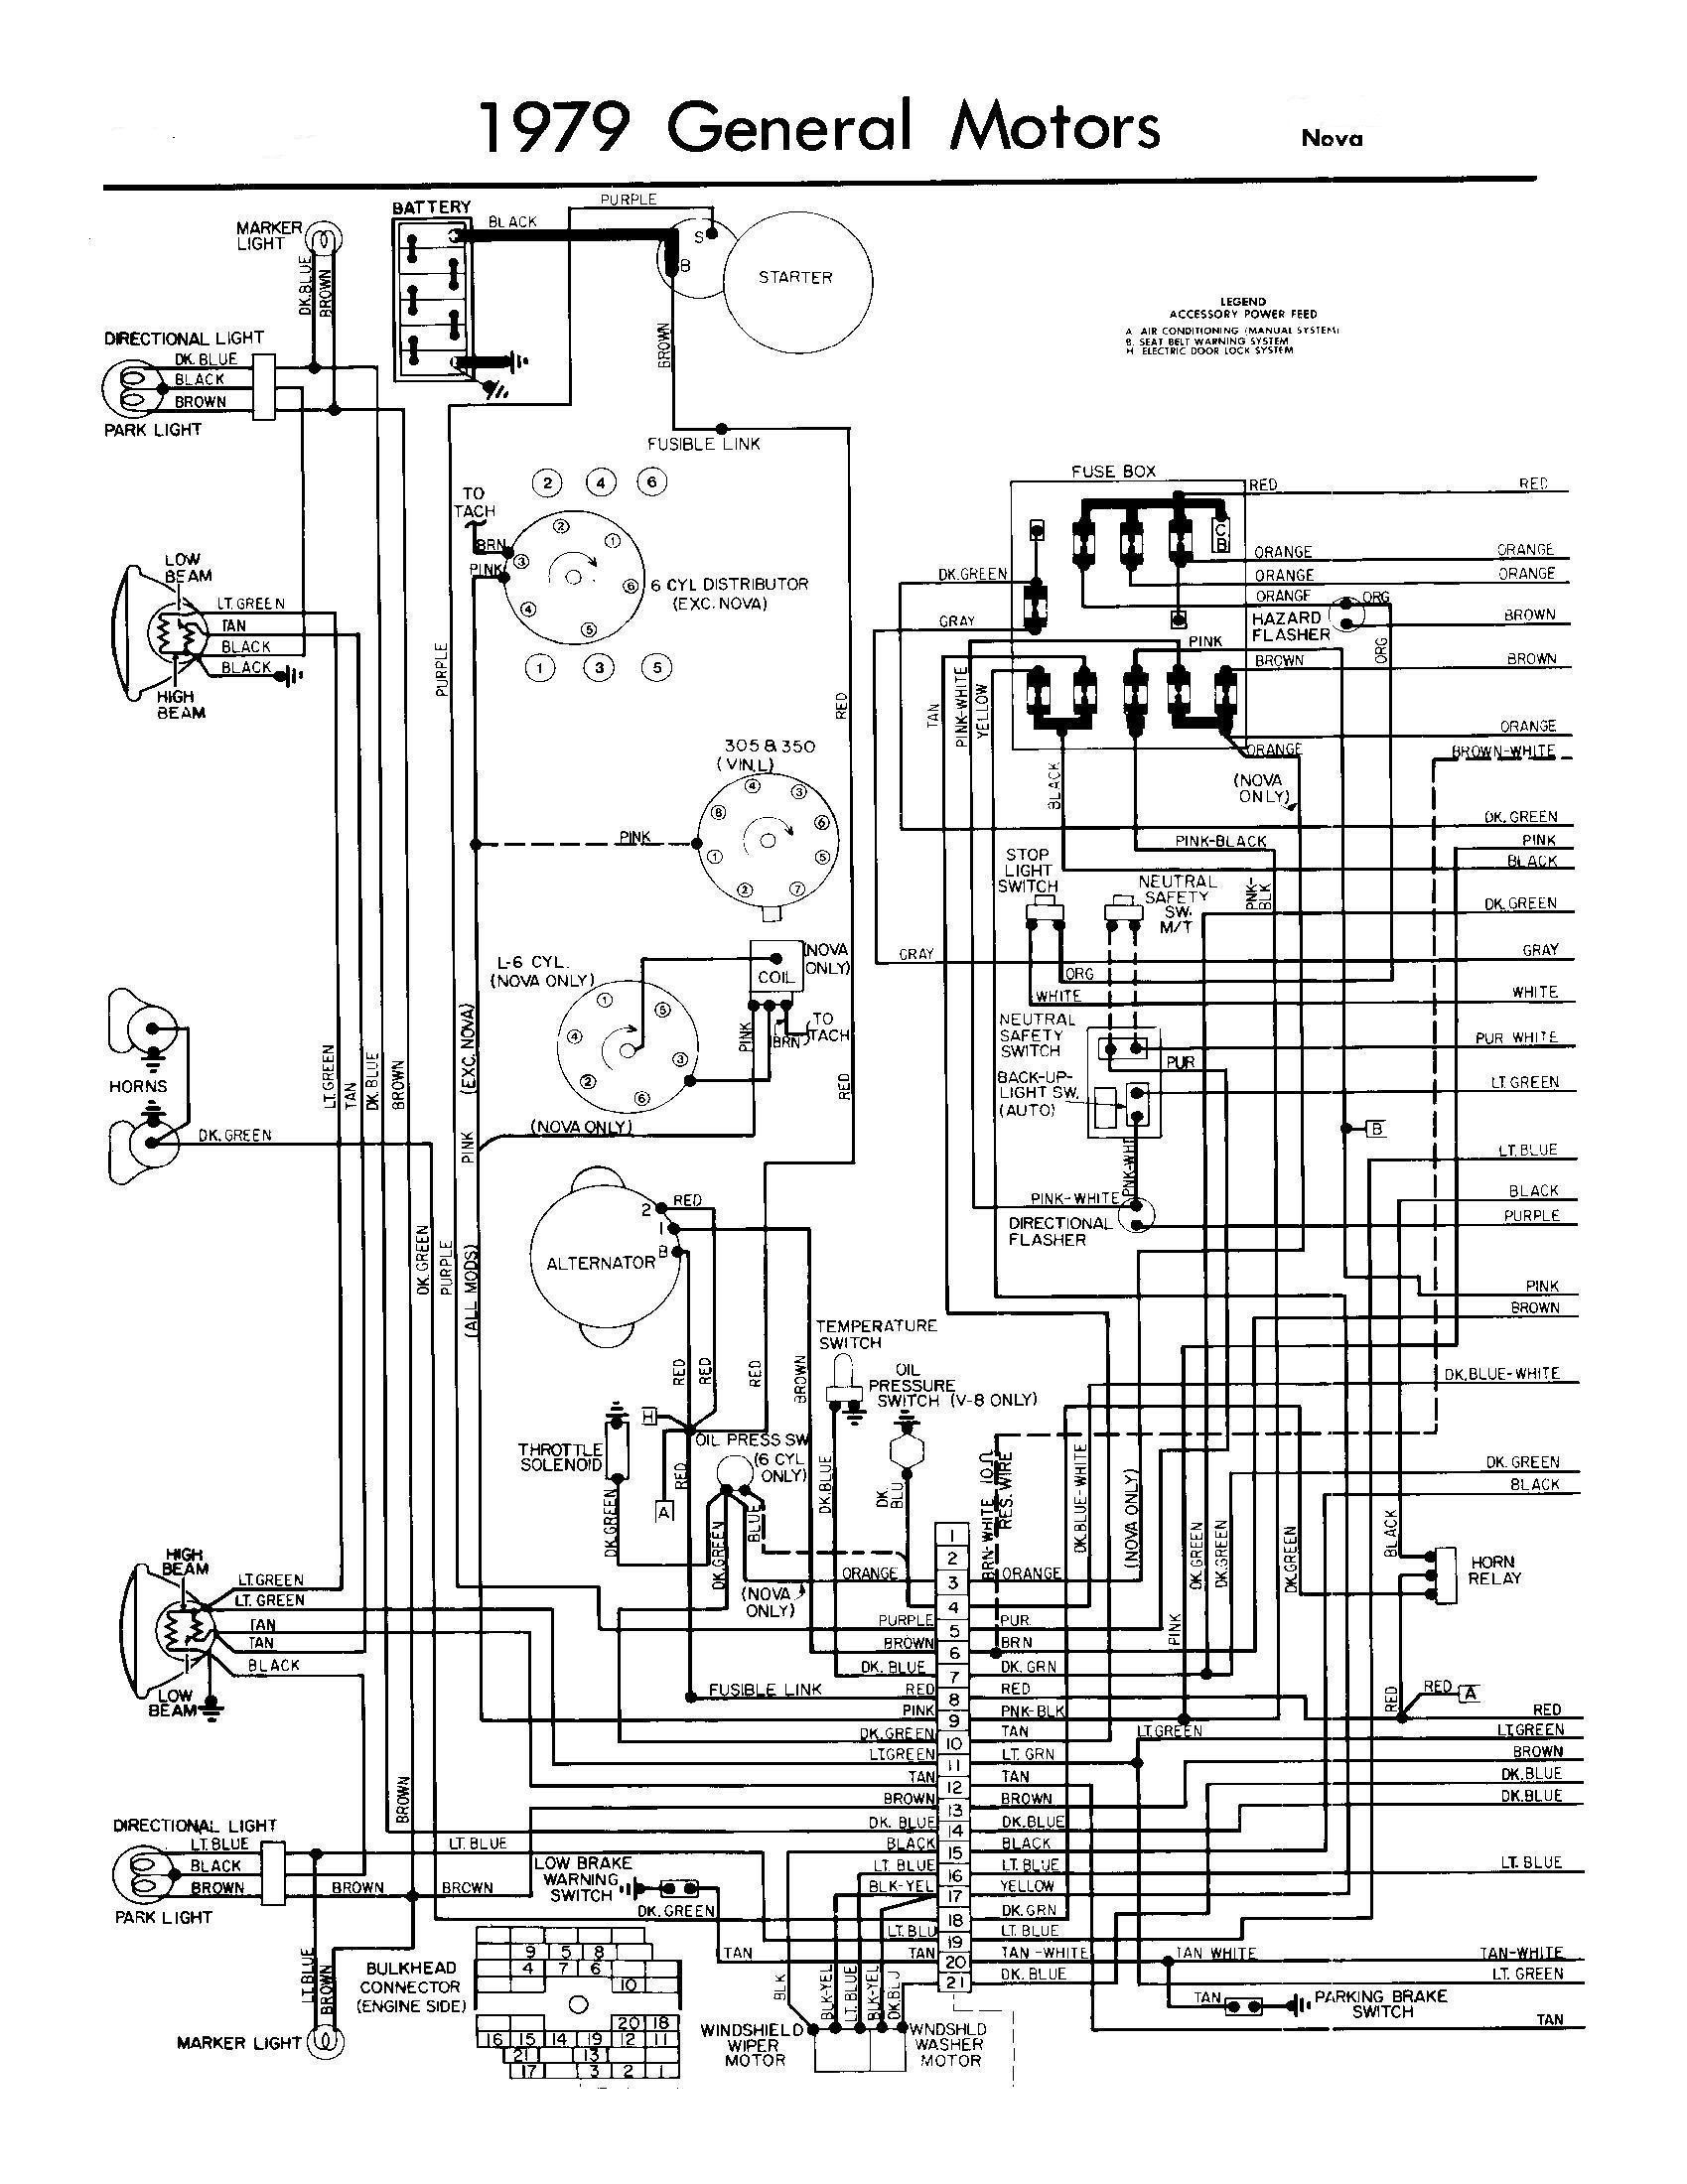 wiring diagram 1975 nova wiring diagram library u2022 rh wiringboxa today 1966 Wire Harness Diagram for a Chevy C 10 Truck 77 Chevy Truck Wiring Diagram